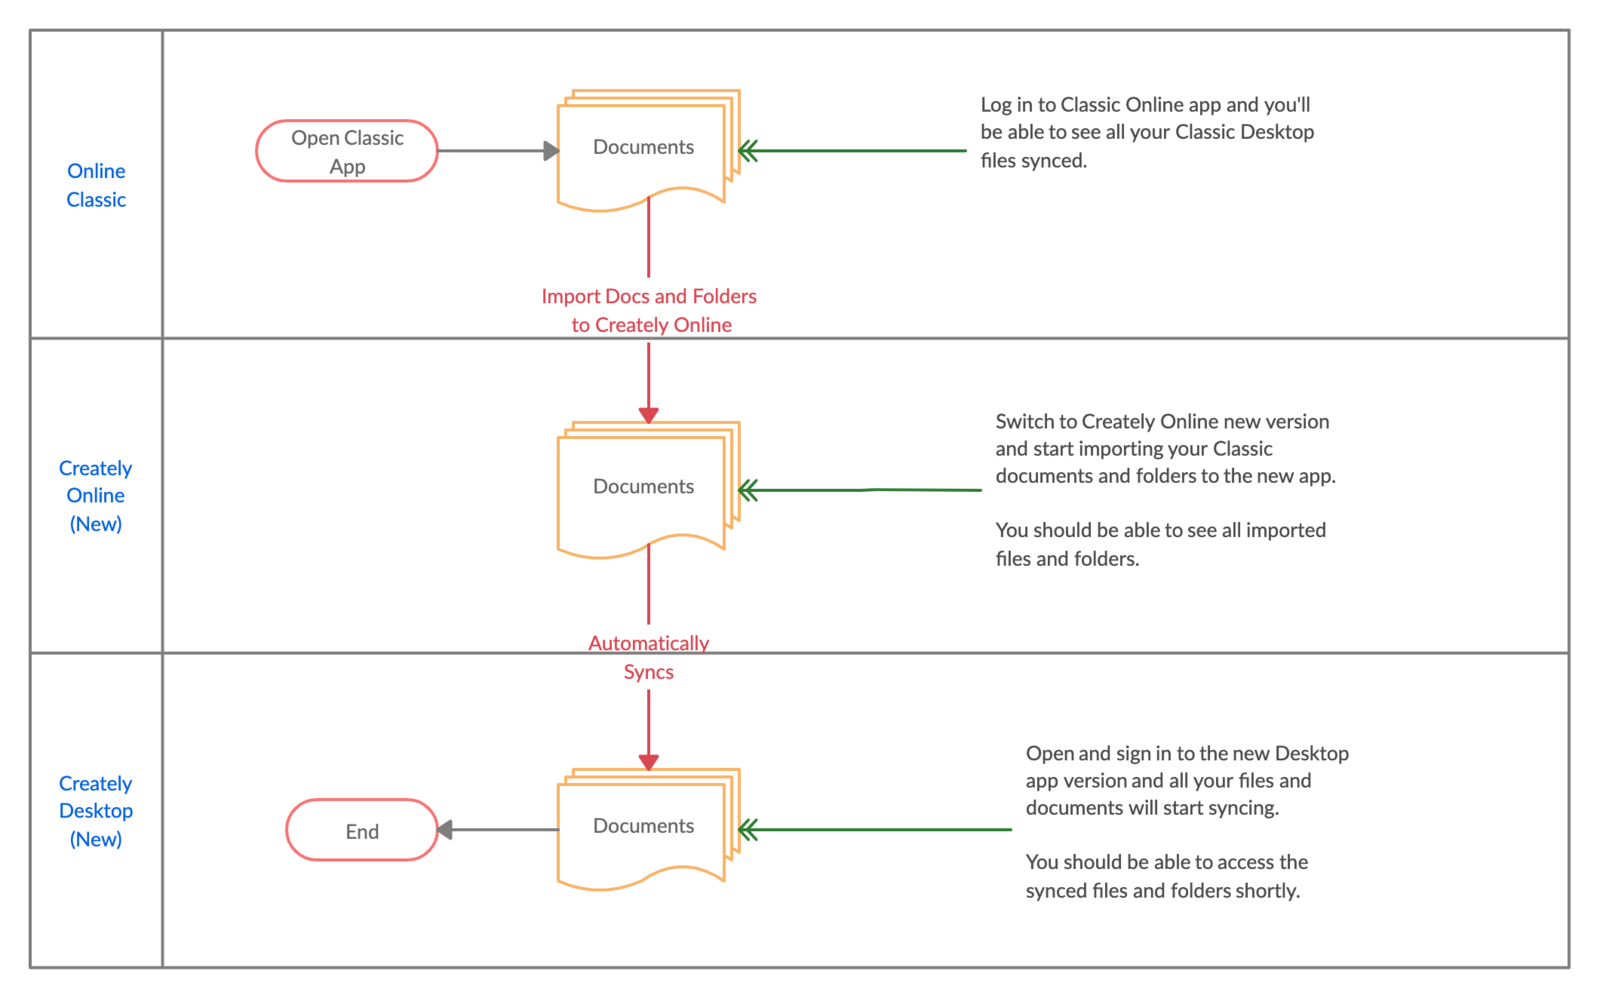 Classic Desktop File Transition Process Flow